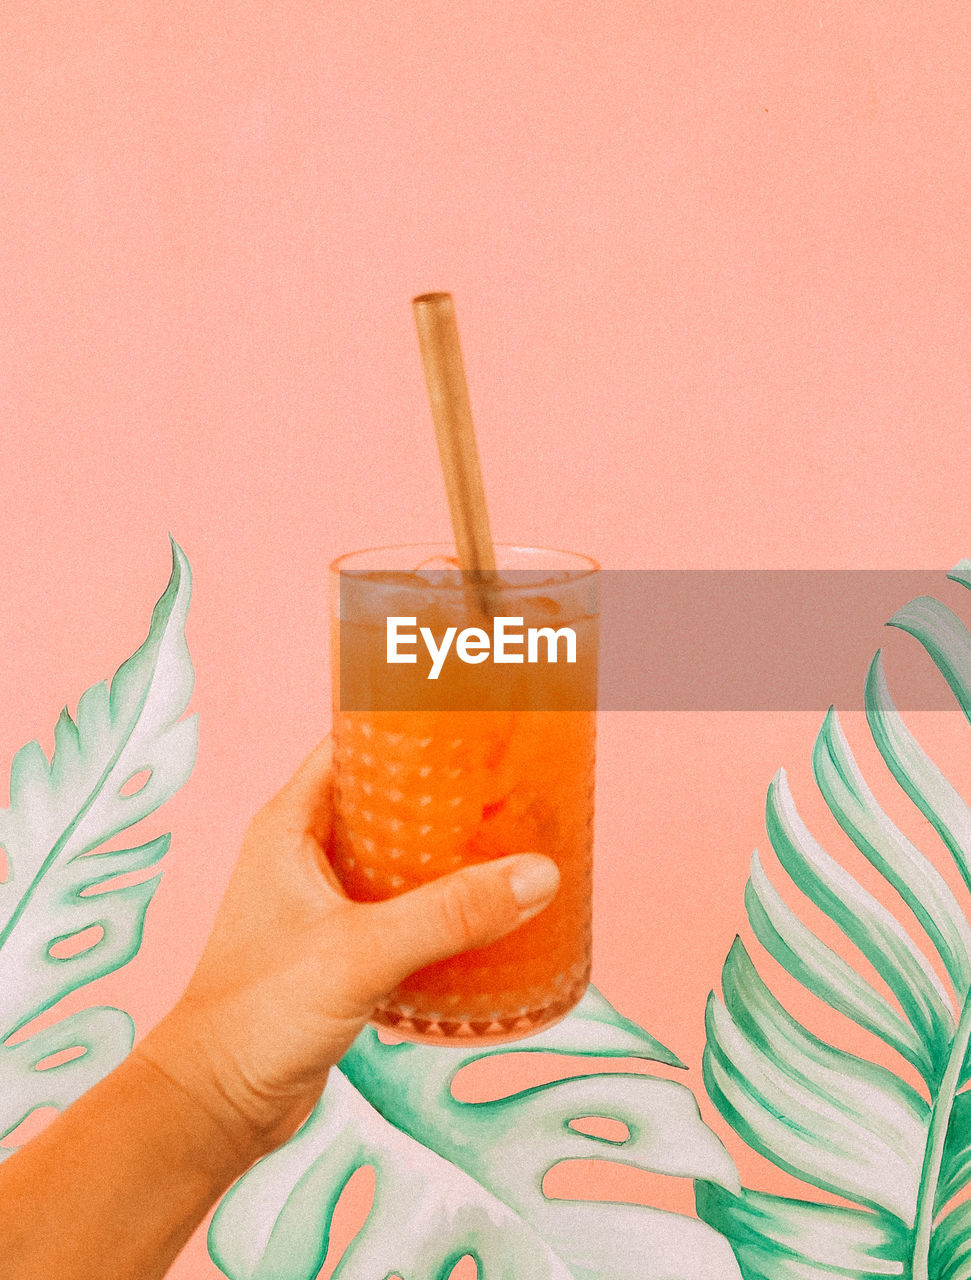 drink, refreshment, human hand, food and drink, straw, glass, drinking straw, hand, drinking glass, household equipment, holding, human body part, lifestyles, indoors, food, real people, one person, body part, freshness, cocktail, finger, non-alcoholic beverage, human limb